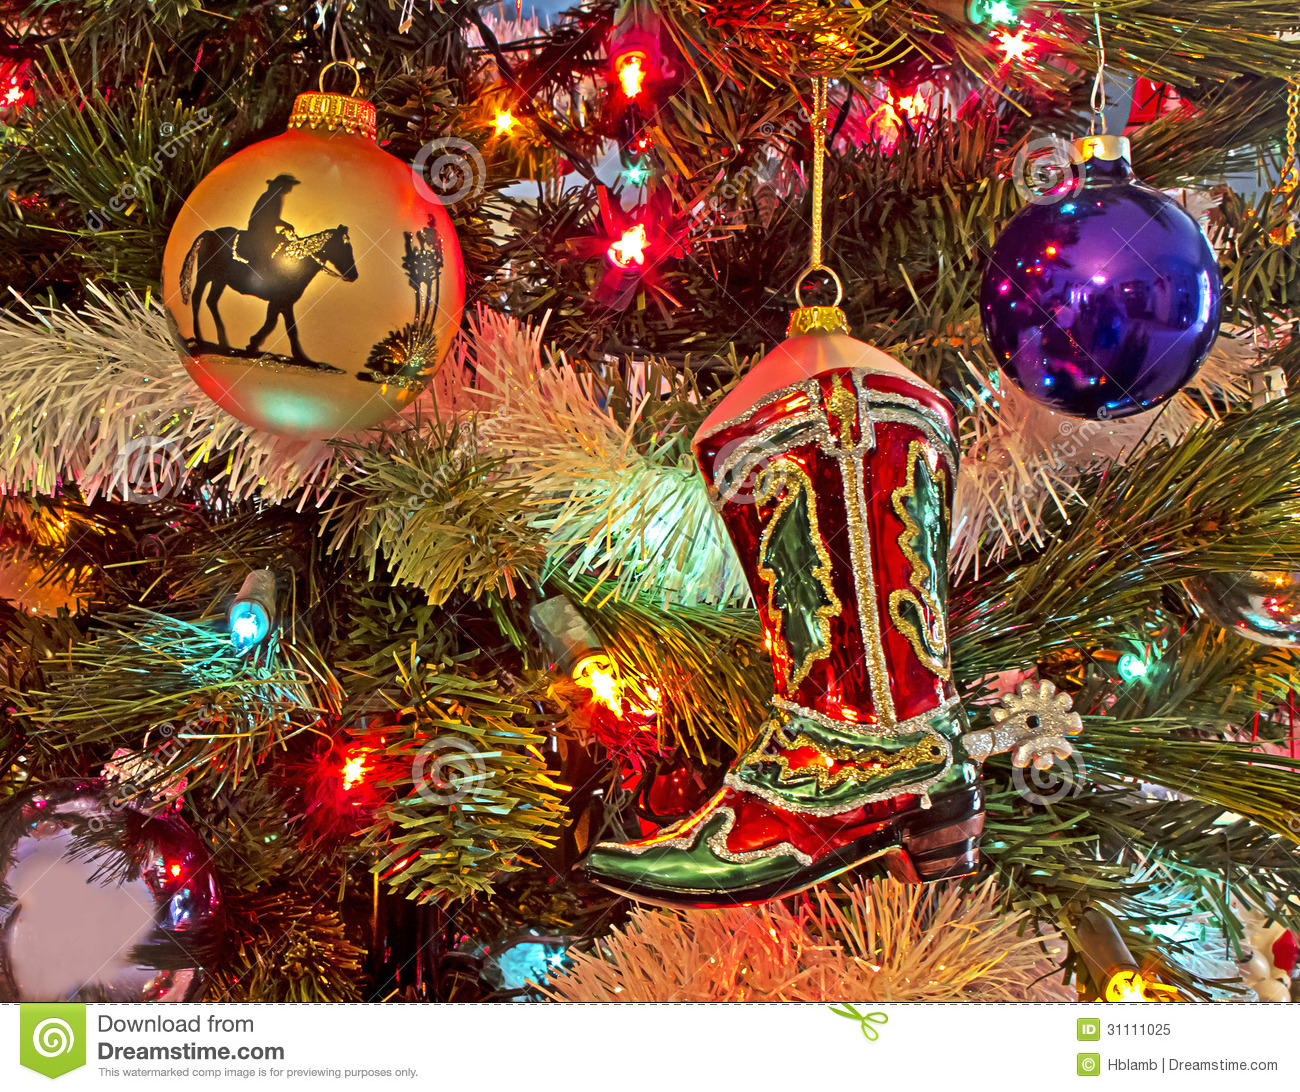 Cowboy Christmas Royalty Free Stock Photo - Image: 31111025